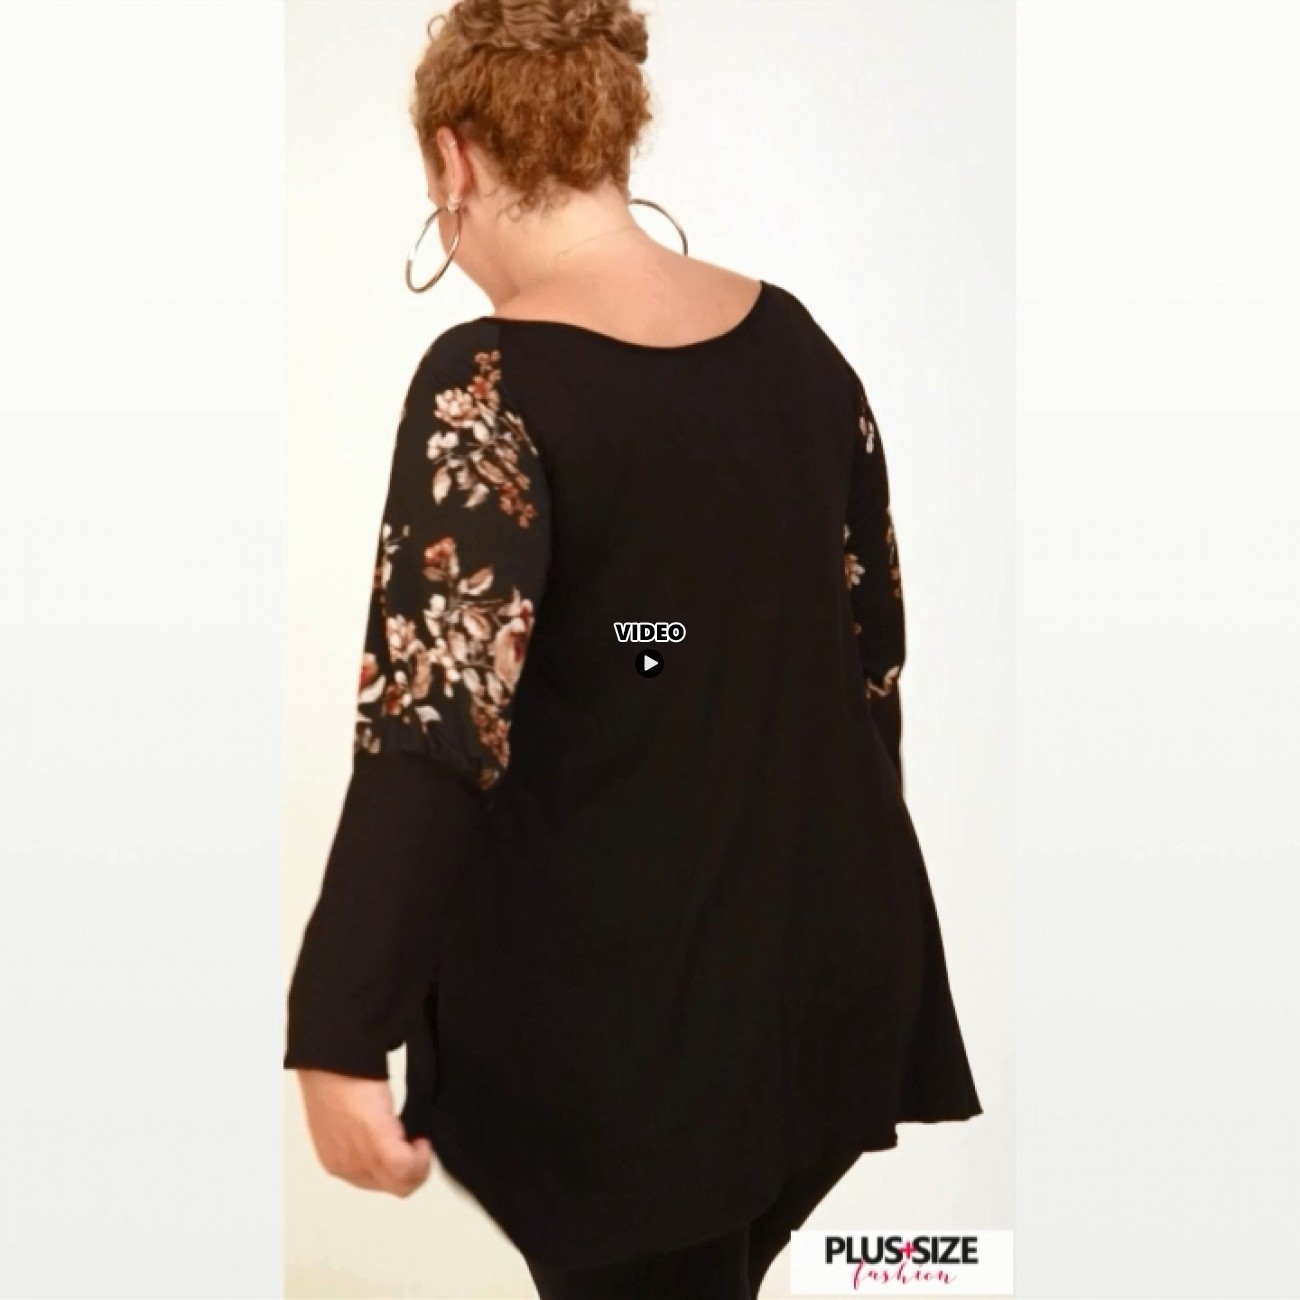 B20-4761 Evaze Blouse with pinch-tie design